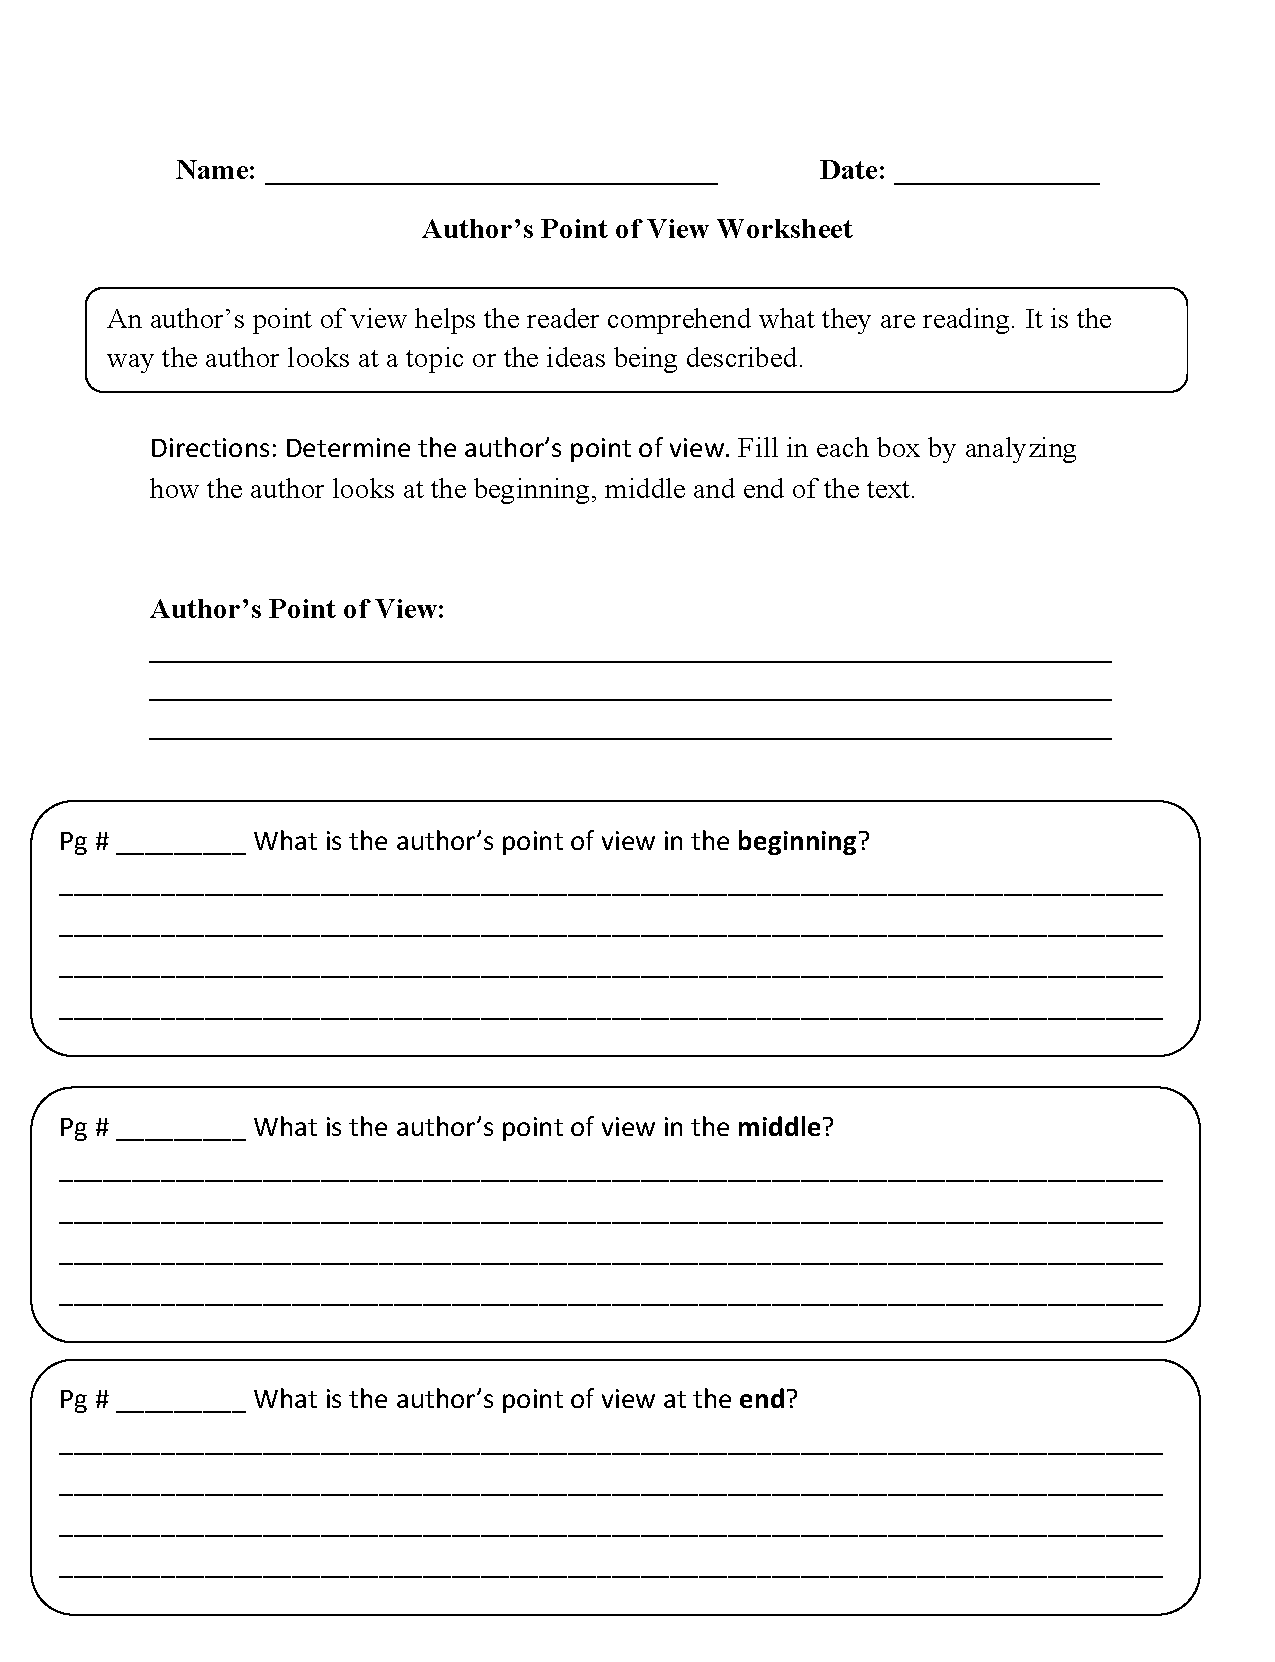 Weirdmailus  Stunning Englishlinxcom  Point Of View Worksheets With Foxy Point Of View Worksheets With Nice Multiplication  Times Tables Worksheets Also Clock Worksheets Free In Addition Rhyming Words Worksheets For First Grade And Measure Length Worksheet As Well As Free Printable Tens And Ones Worksheets For First Grade Additionally Free Math Worksheets Middle School From Englishlinxcom With Weirdmailus  Foxy Englishlinxcom  Point Of View Worksheets With Nice Point Of View Worksheets And Stunning Multiplication  Times Tables Worksheets Also Clock Worksheets Free In Addition Rhyming Words Worksheets For First Grade From Englishlinxcom